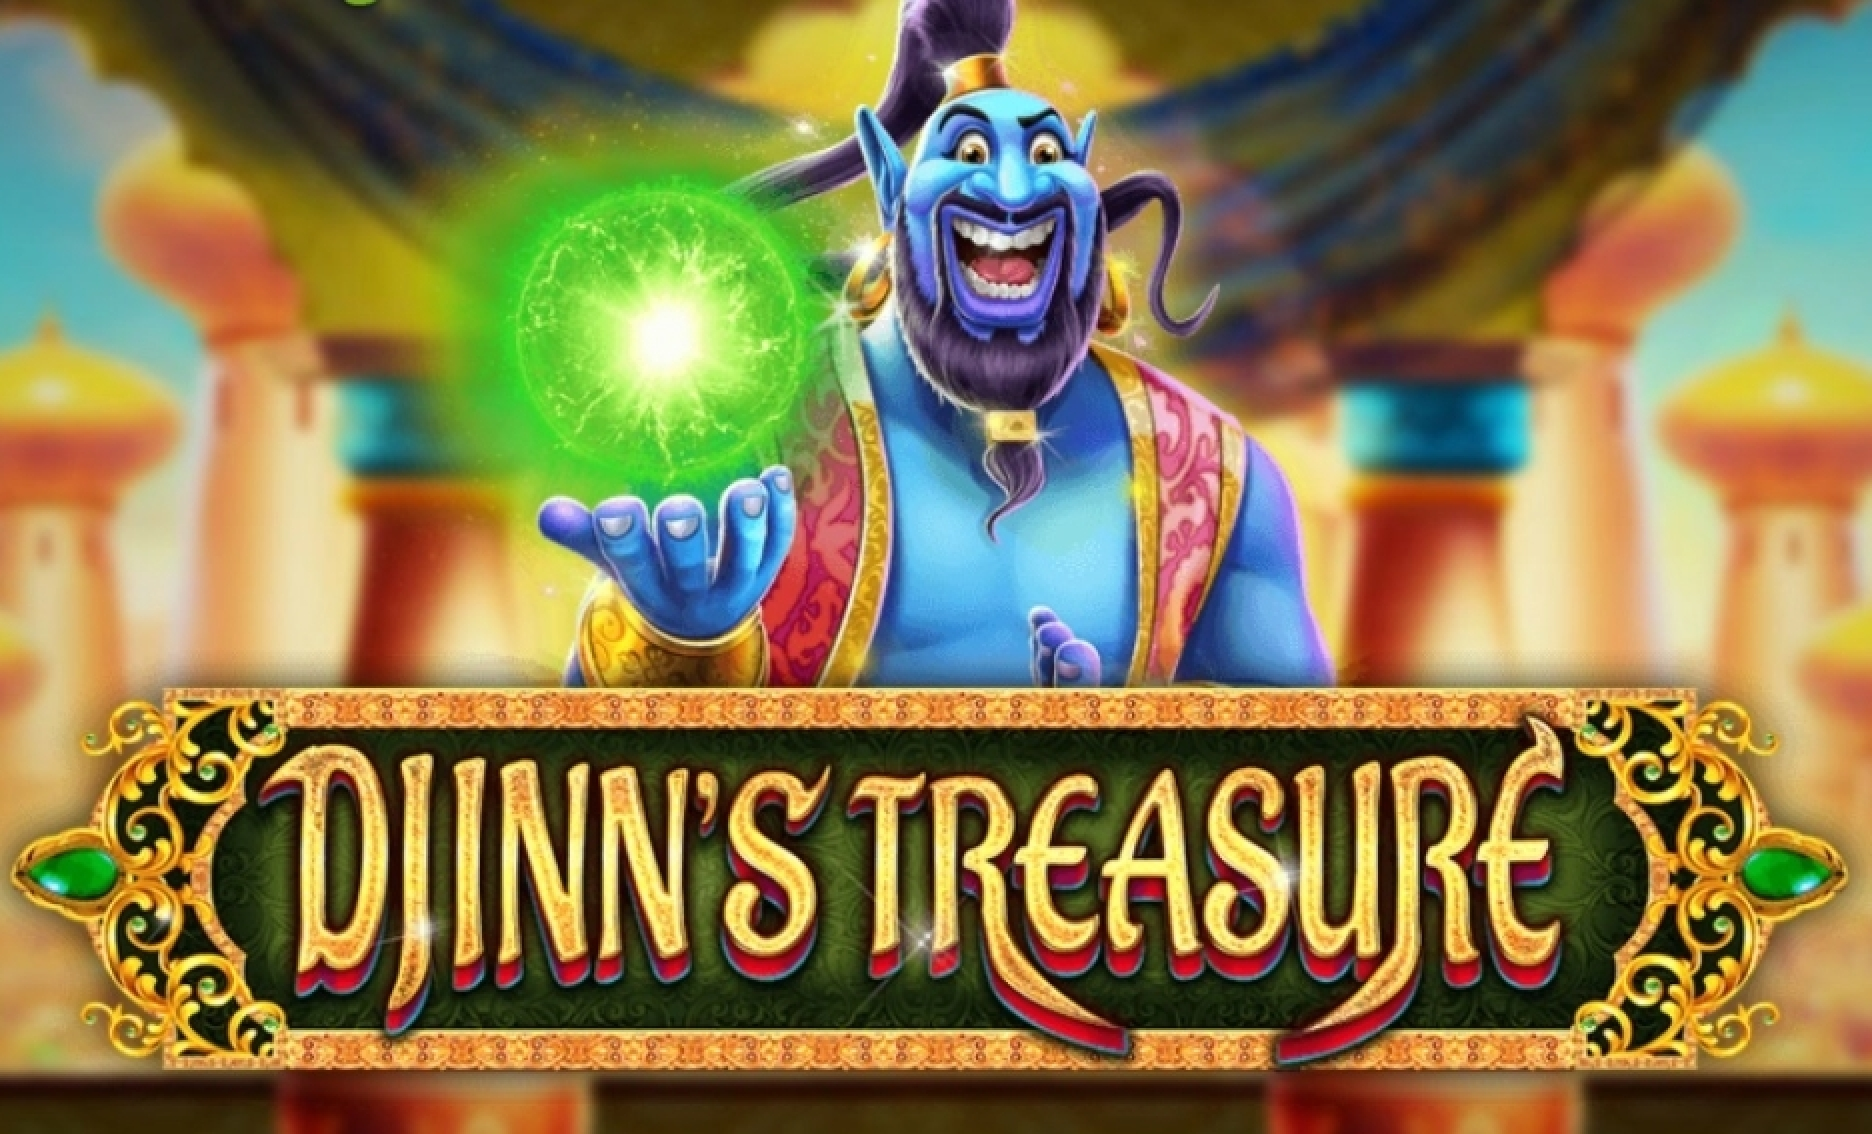 The Djinns Treasure Online Slot Demo Game by Rocksalt Interactive